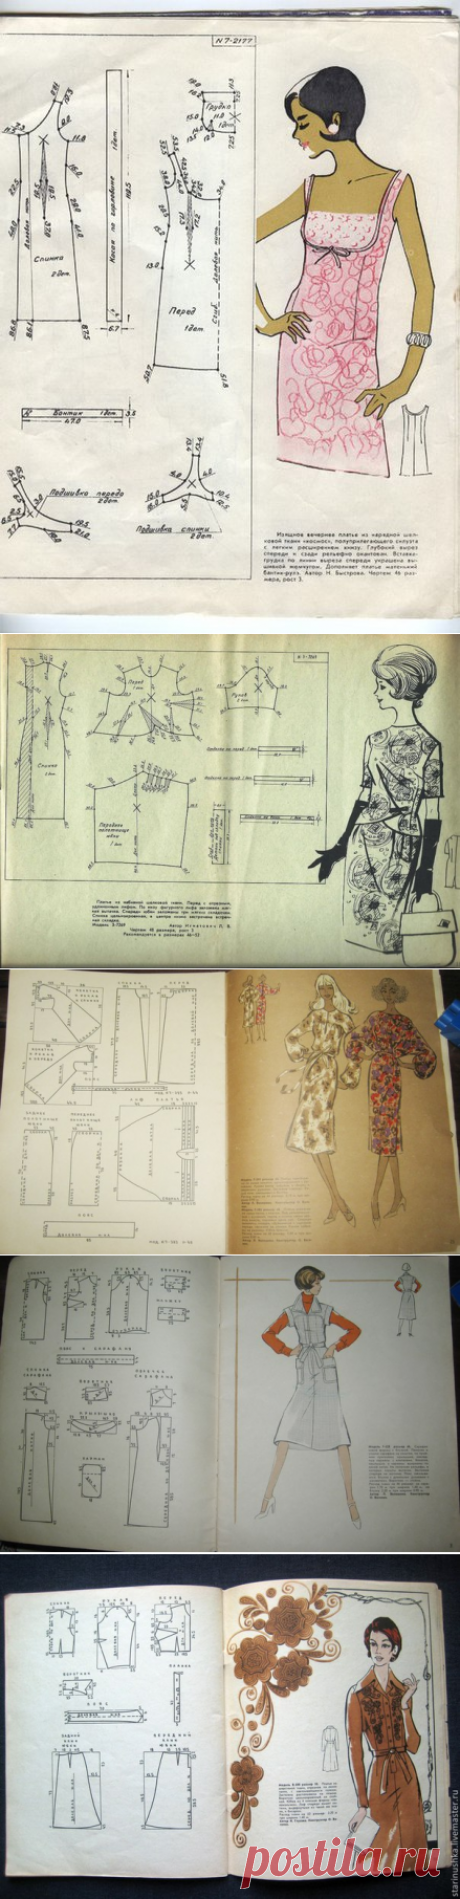 STUDIO of design clothes: sewing, patterns. Retropatterns from editions of last years.